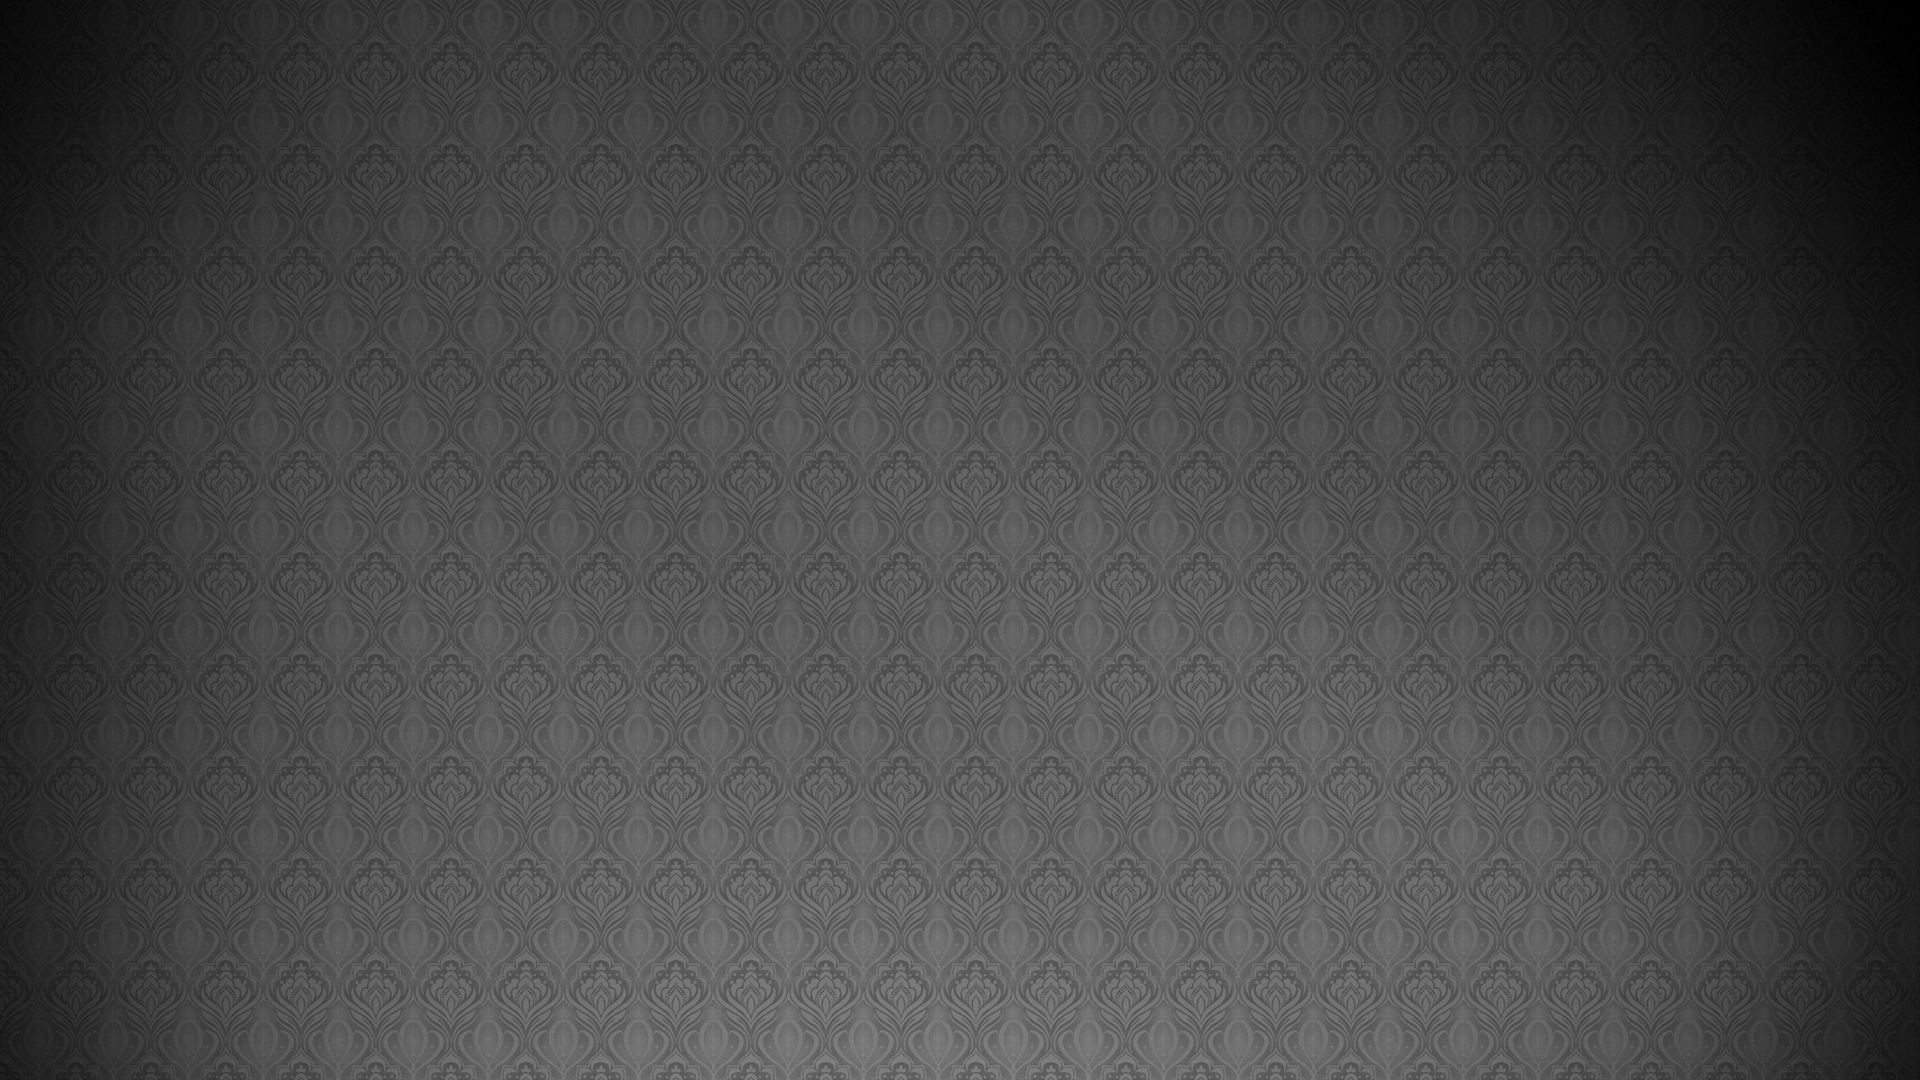 Shadow pattern wallpaper